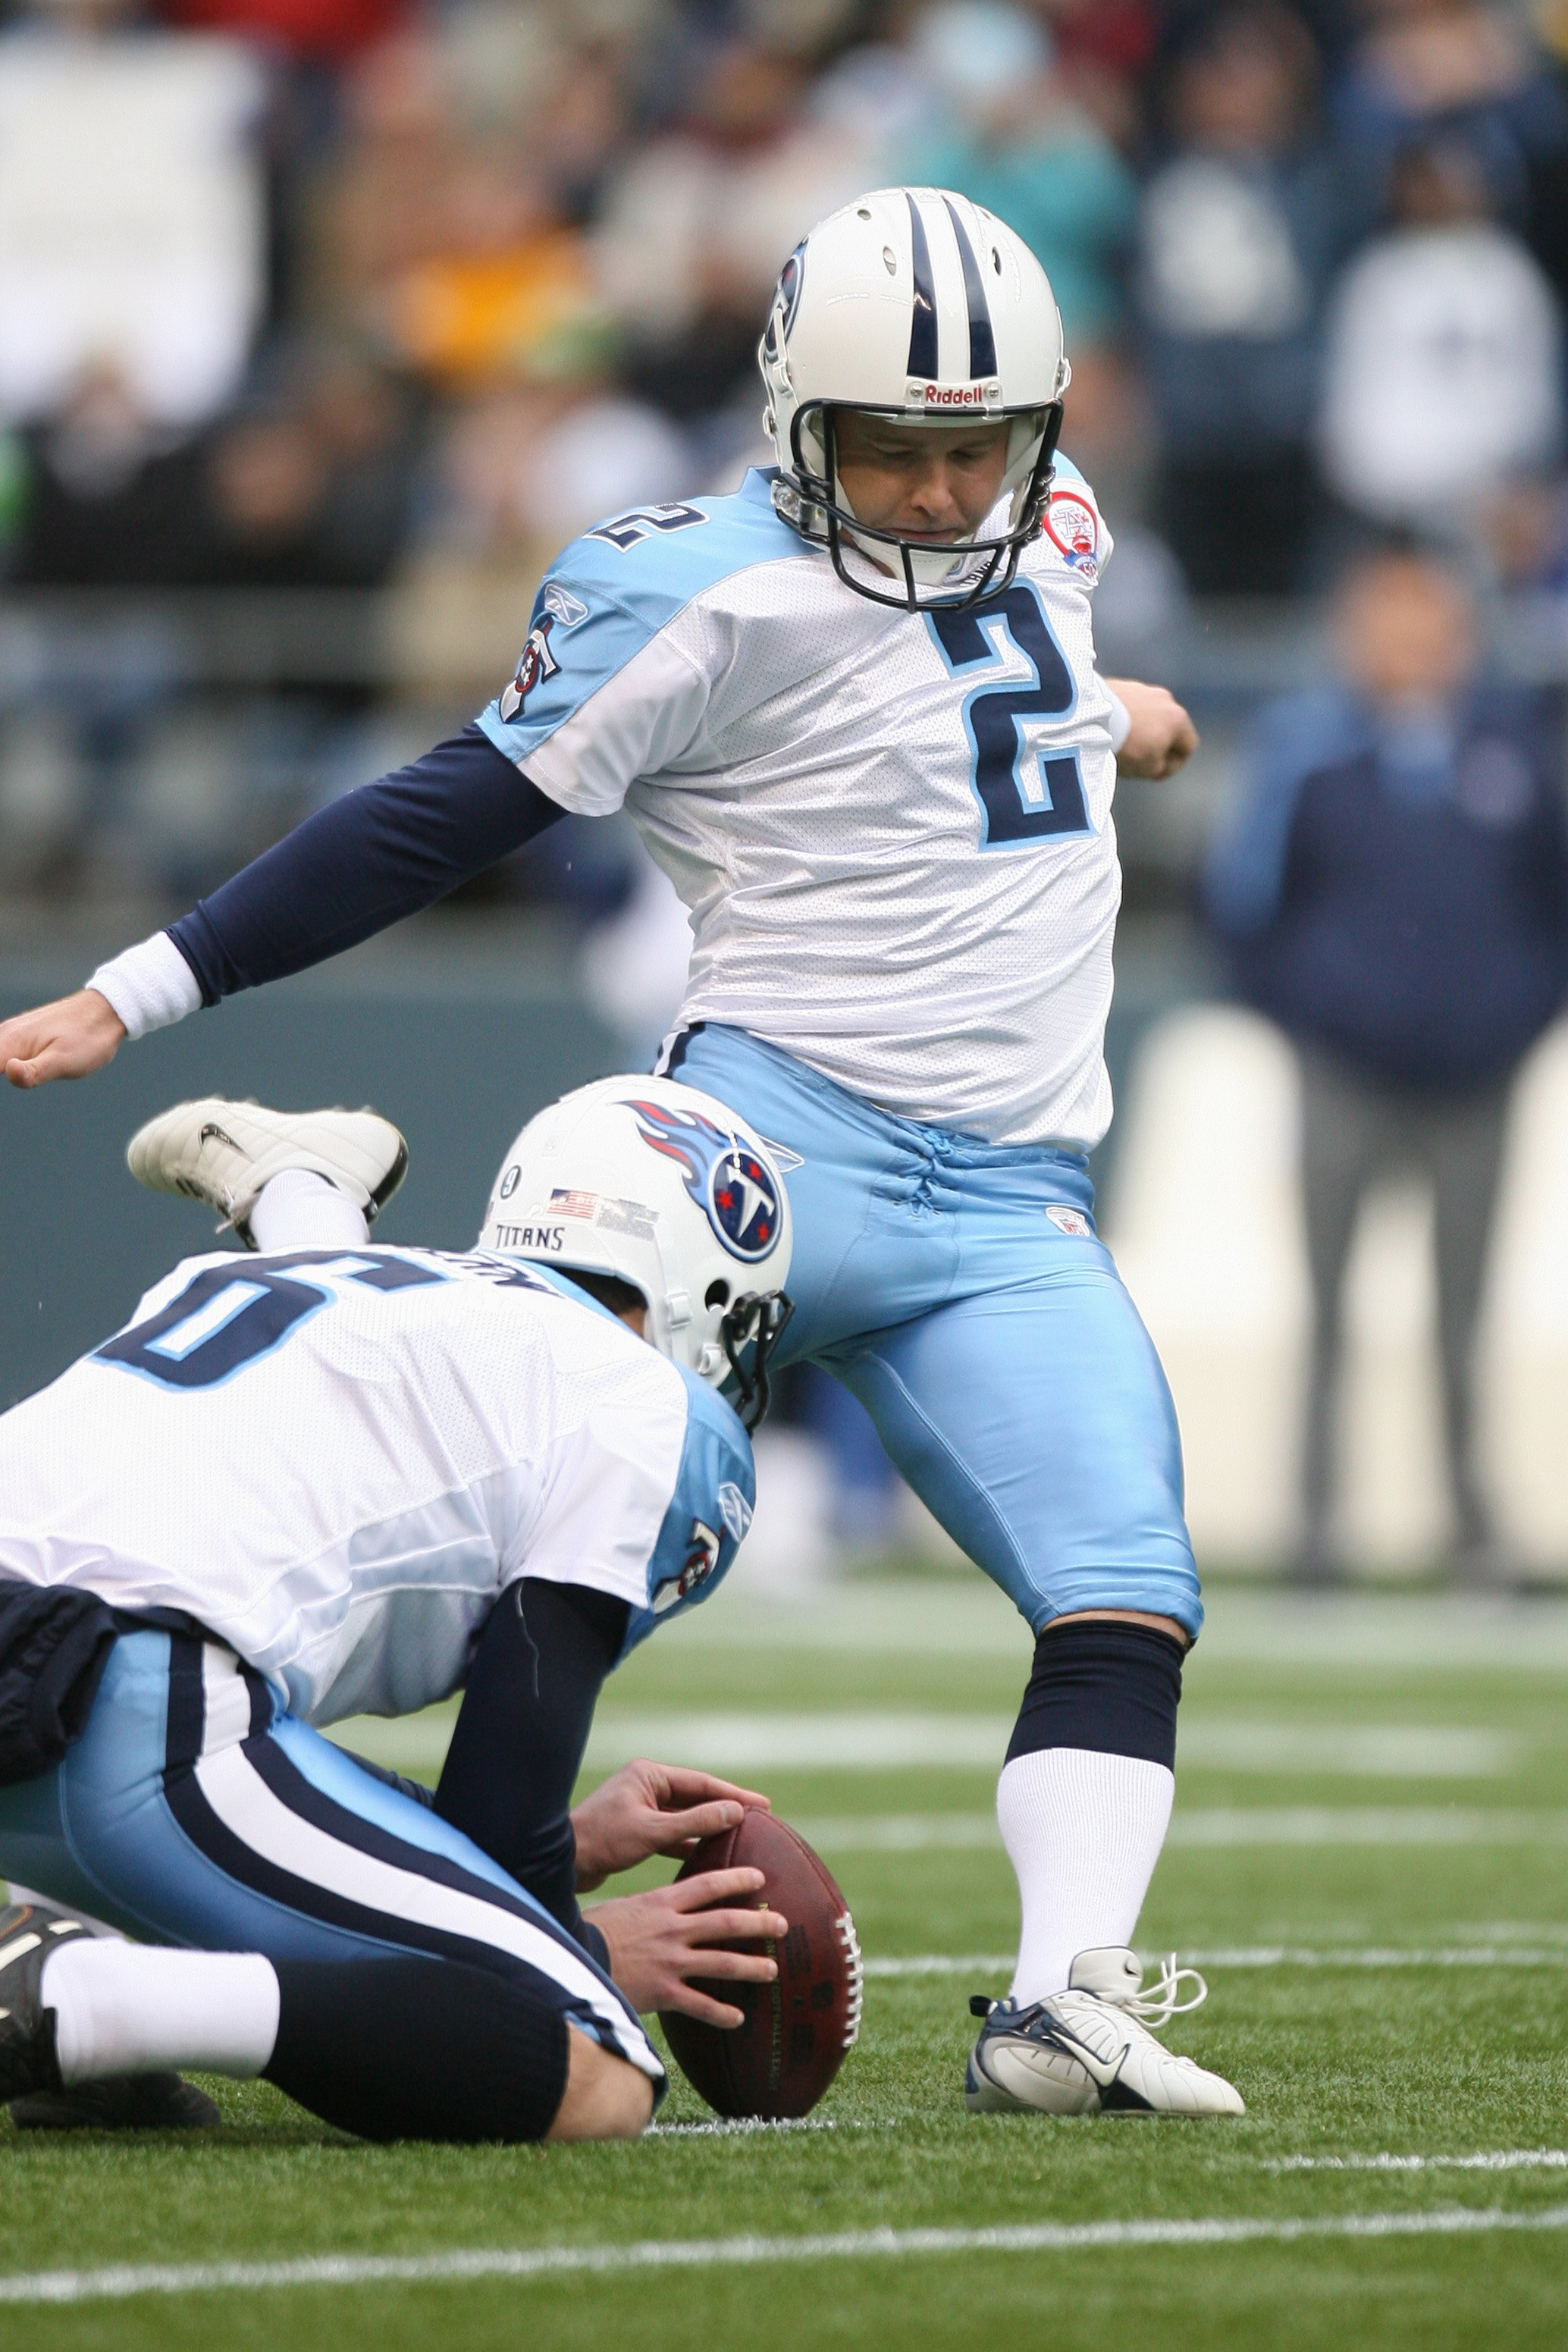 SEATTLE - JANUARY 03:  Rob Bironas #2 of the Tennessee Titans kicks during the game against the Seattle Seahawks on January 3, 2010 at Qwest Field in Seattle, Washington. (Photo by Otto Greule Jr/Getty Images)